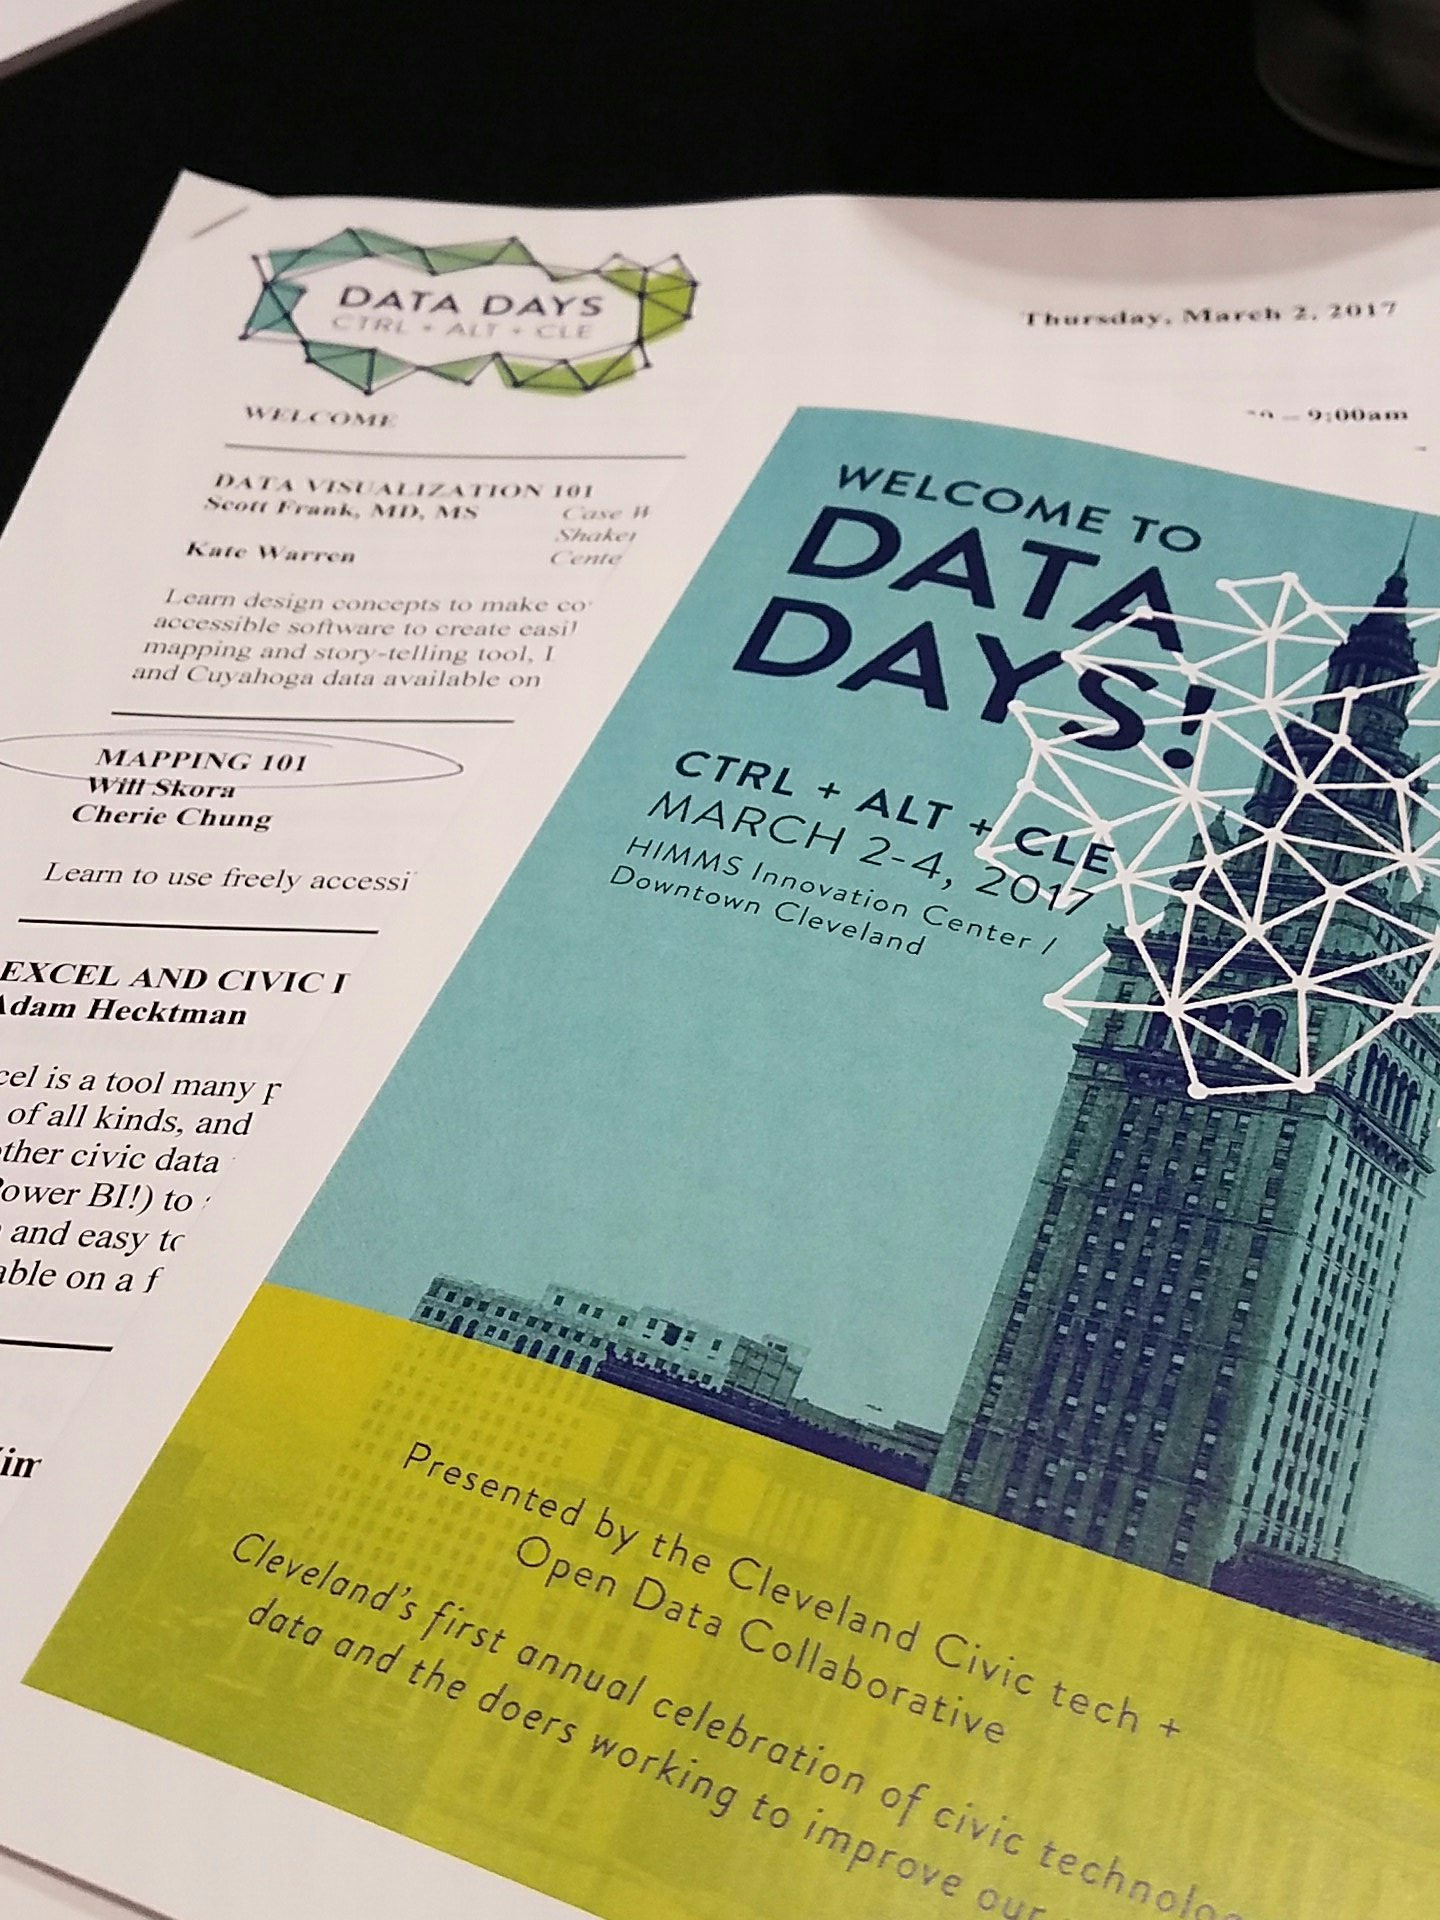 1. Mapping 101 2. Integrated Data and Child Lead expos  3. Health Data Matters 4. Data Sci 102 #DataDaysCLE  #HealthandHousing https://t.co/EXB3HboUpk